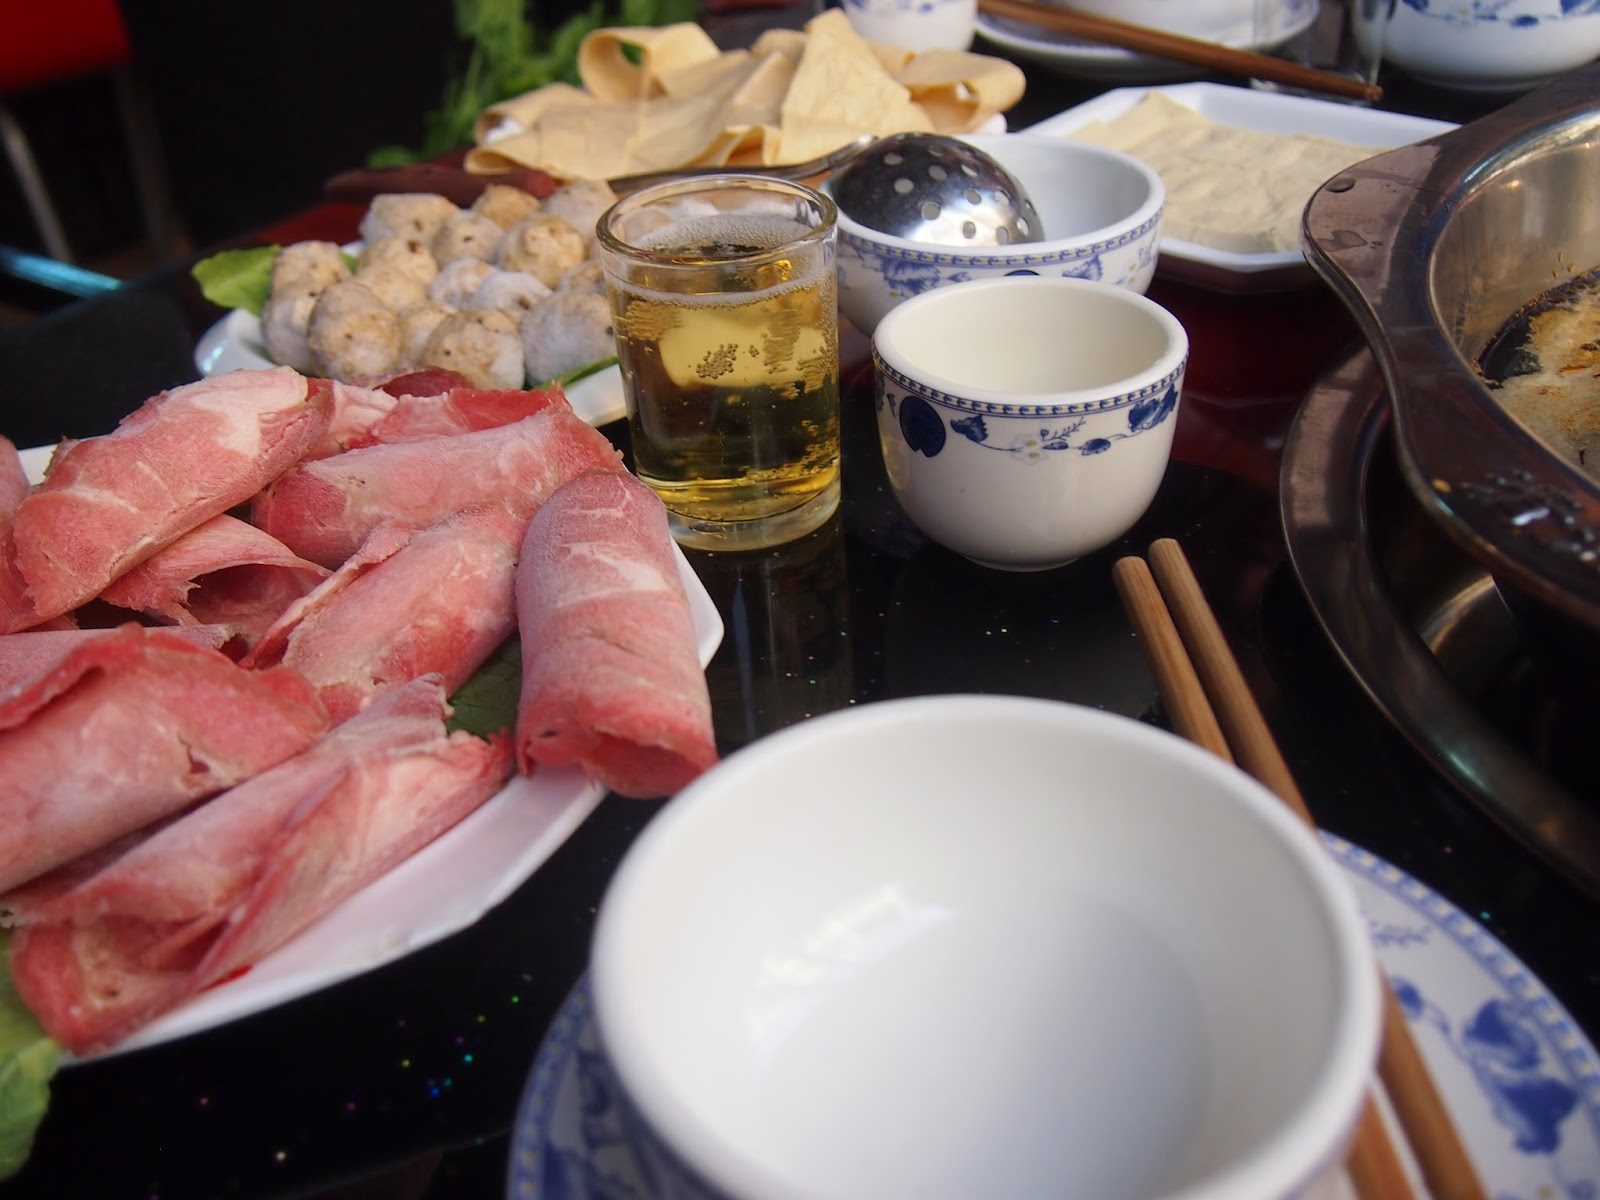 beer and uncooked food for hot pot